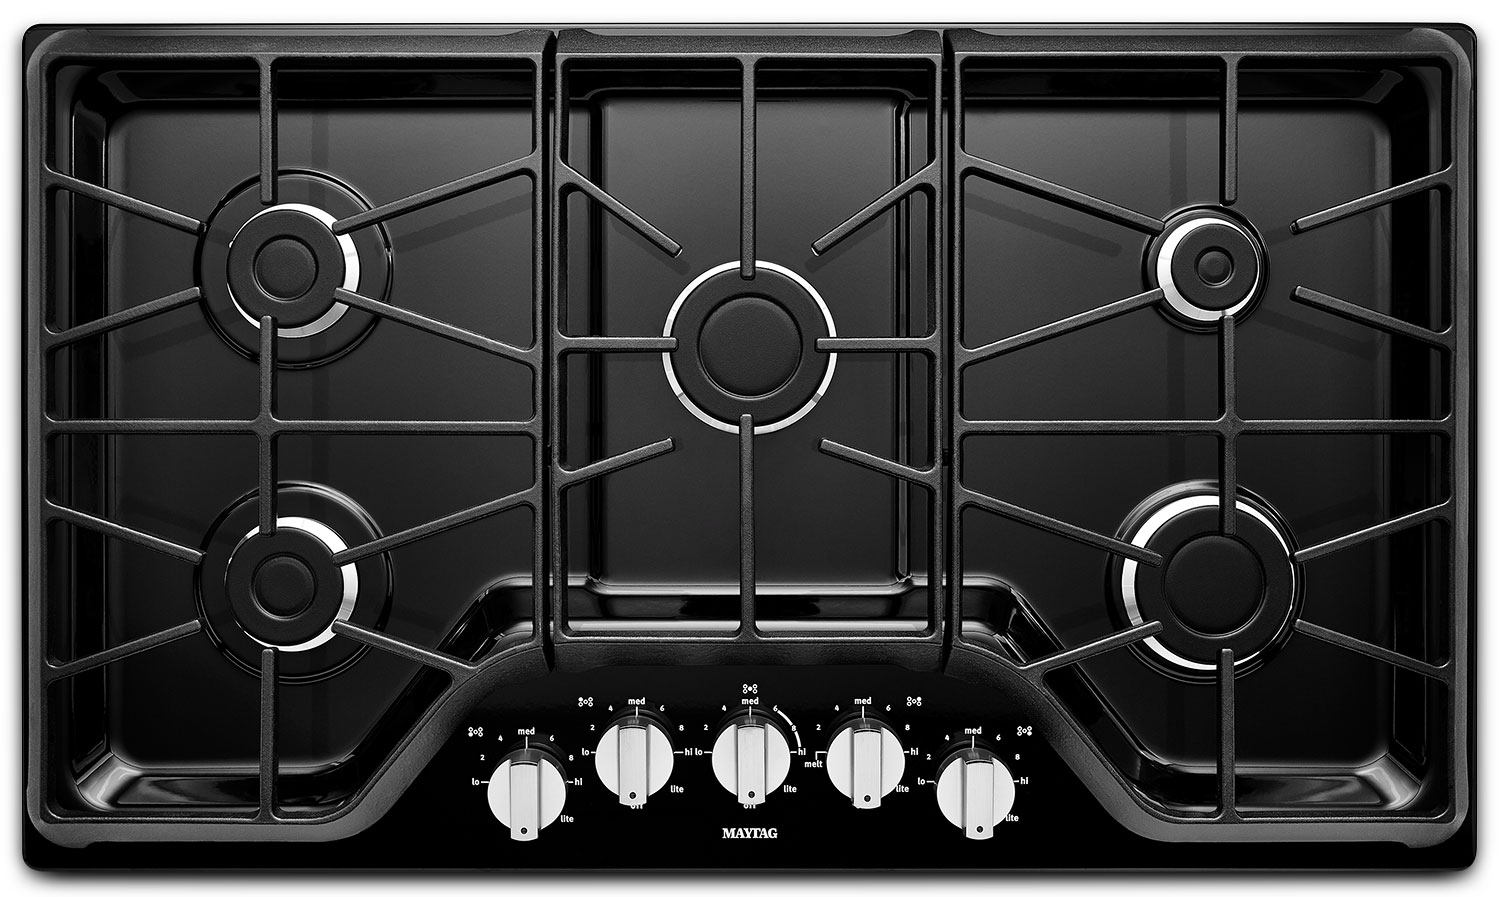 Maytag Black Gas Cooktop - MGC7536DS